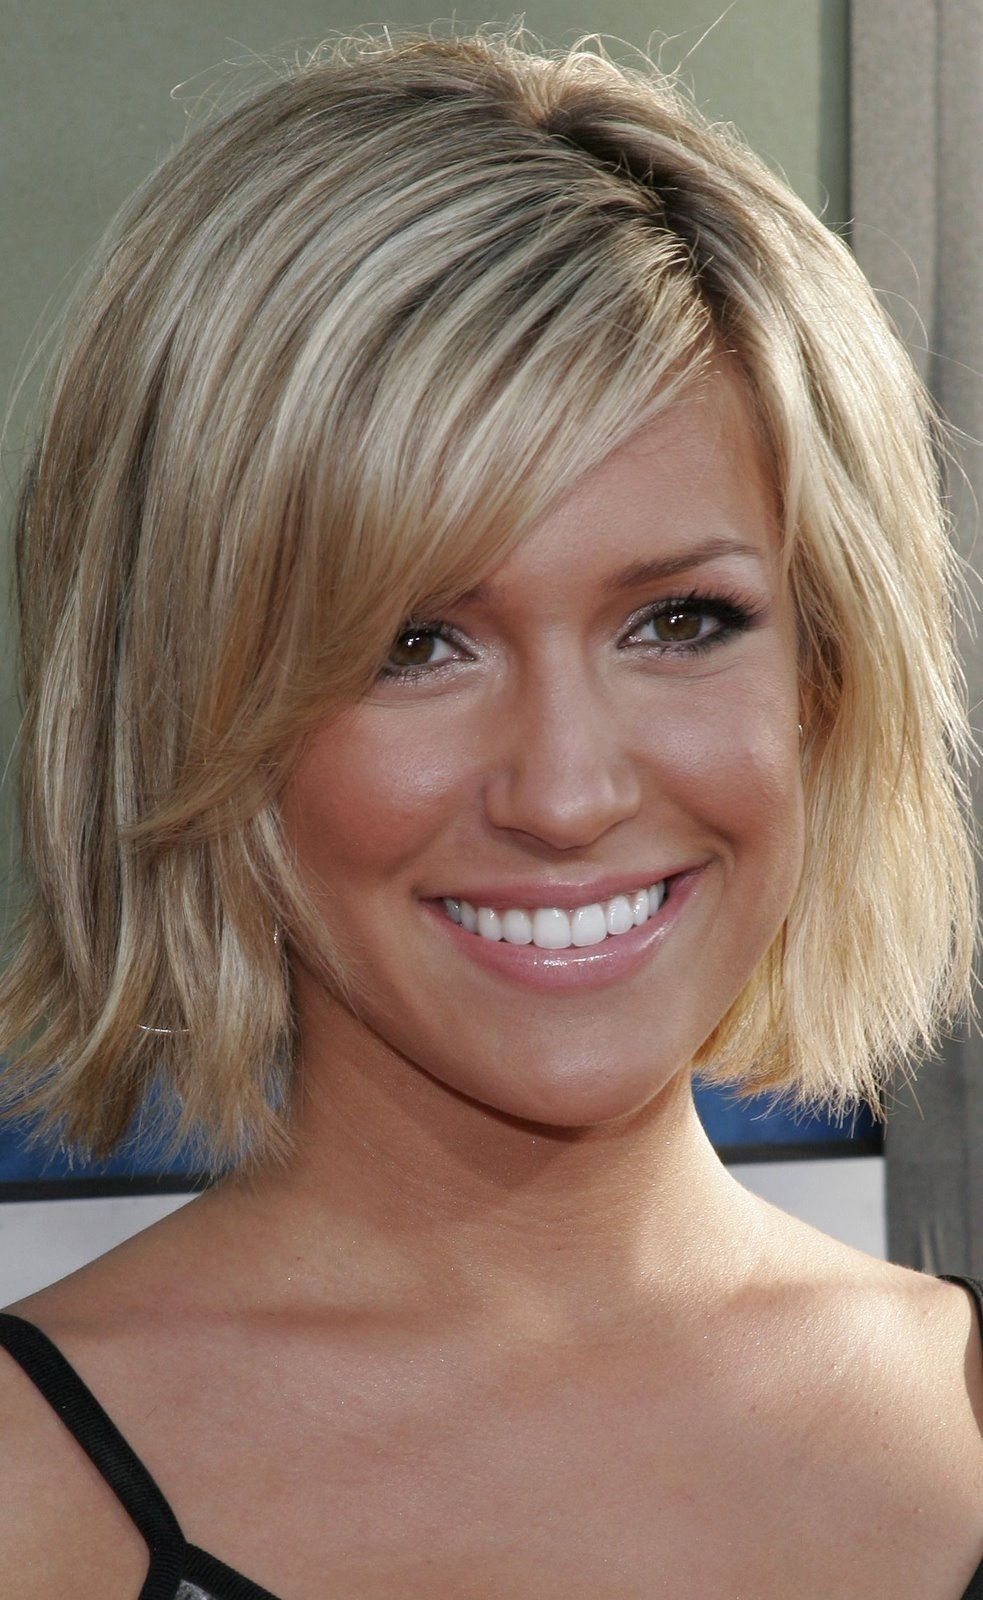 30 Popular Short Blonde Hairstyles images